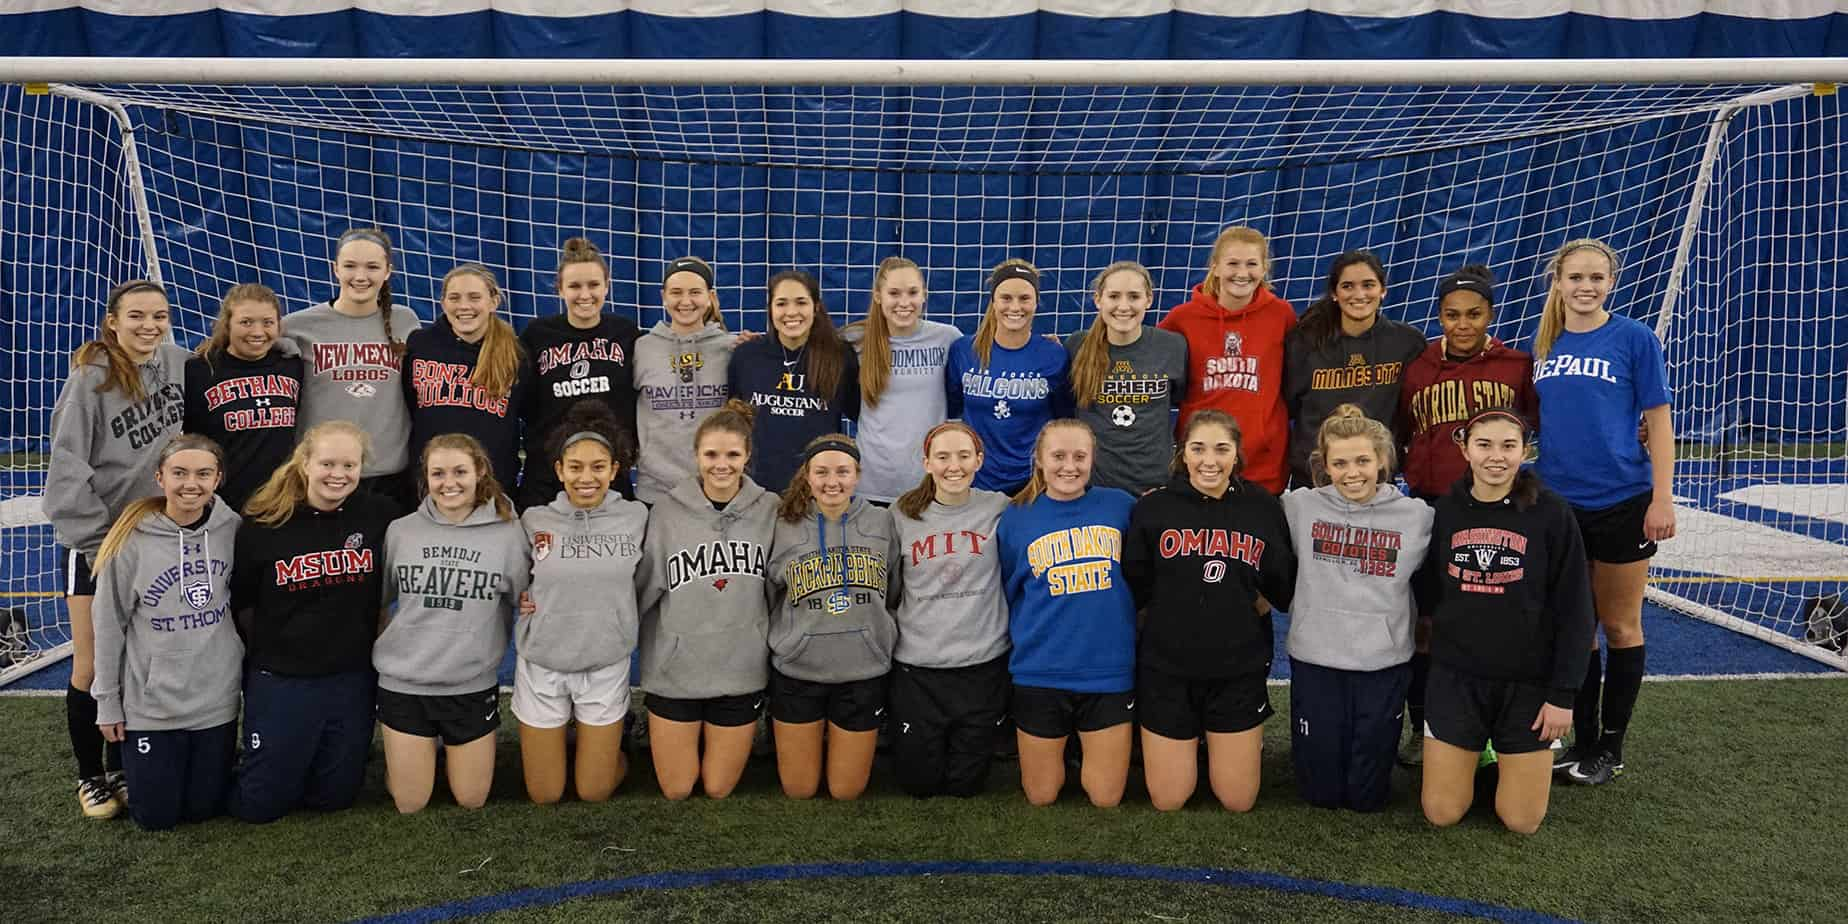 2106-17 MTA Girls Soccer College Commitments